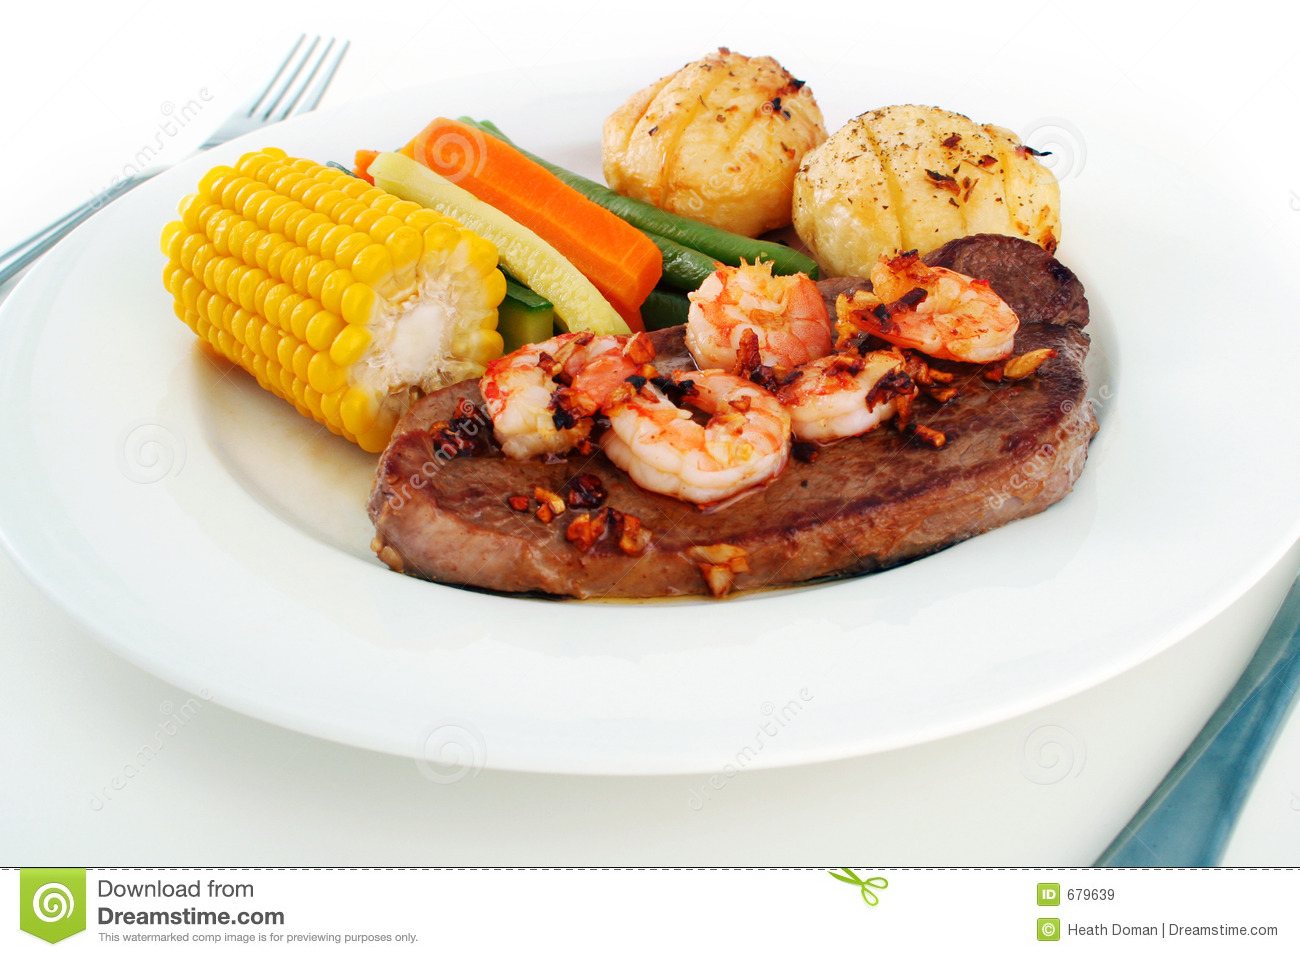 surf n 39 turf meal setting stock image image of plate prawns 679639. Black Bedroom Furniture Sets. Home Design Ideas